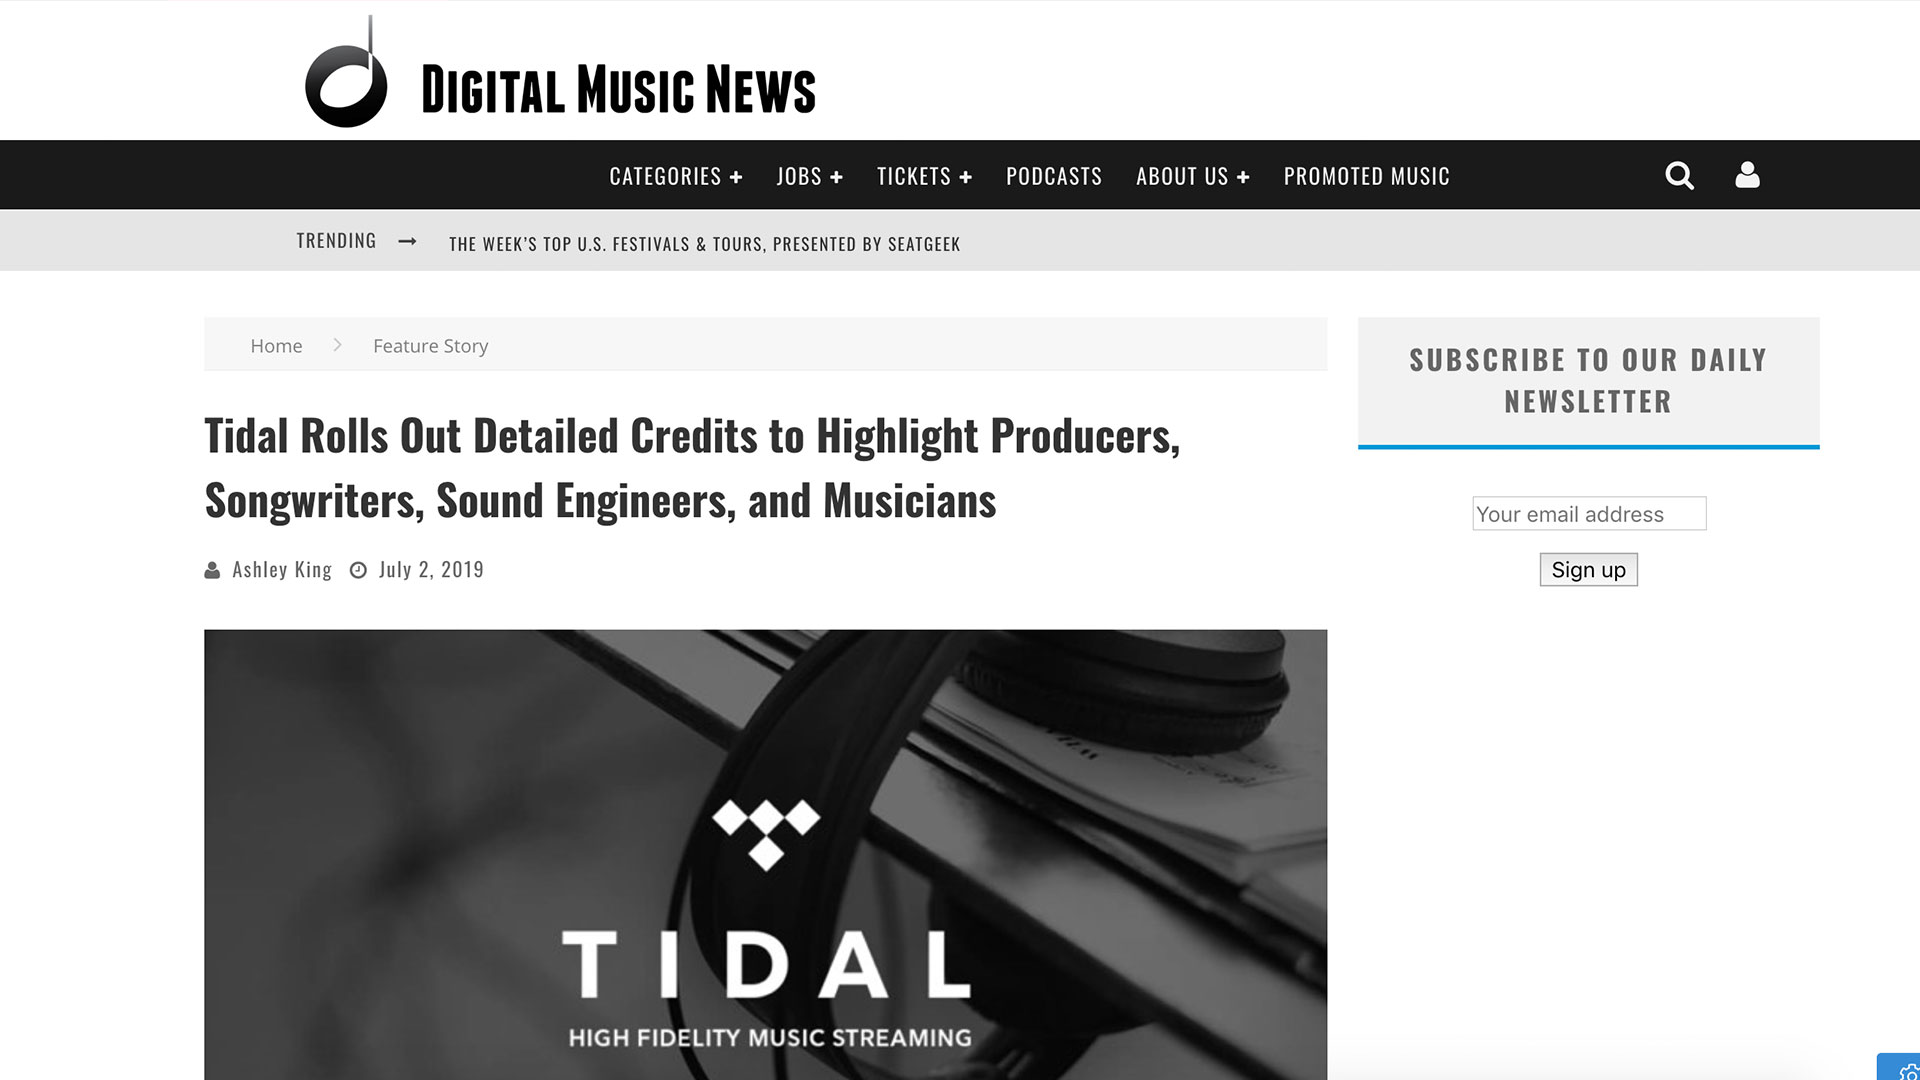 Fairness Rocks News Tidal Rolls Out Detailed Credits to Highlight Producers, Songwriters, Sound Engineers, and Musicians